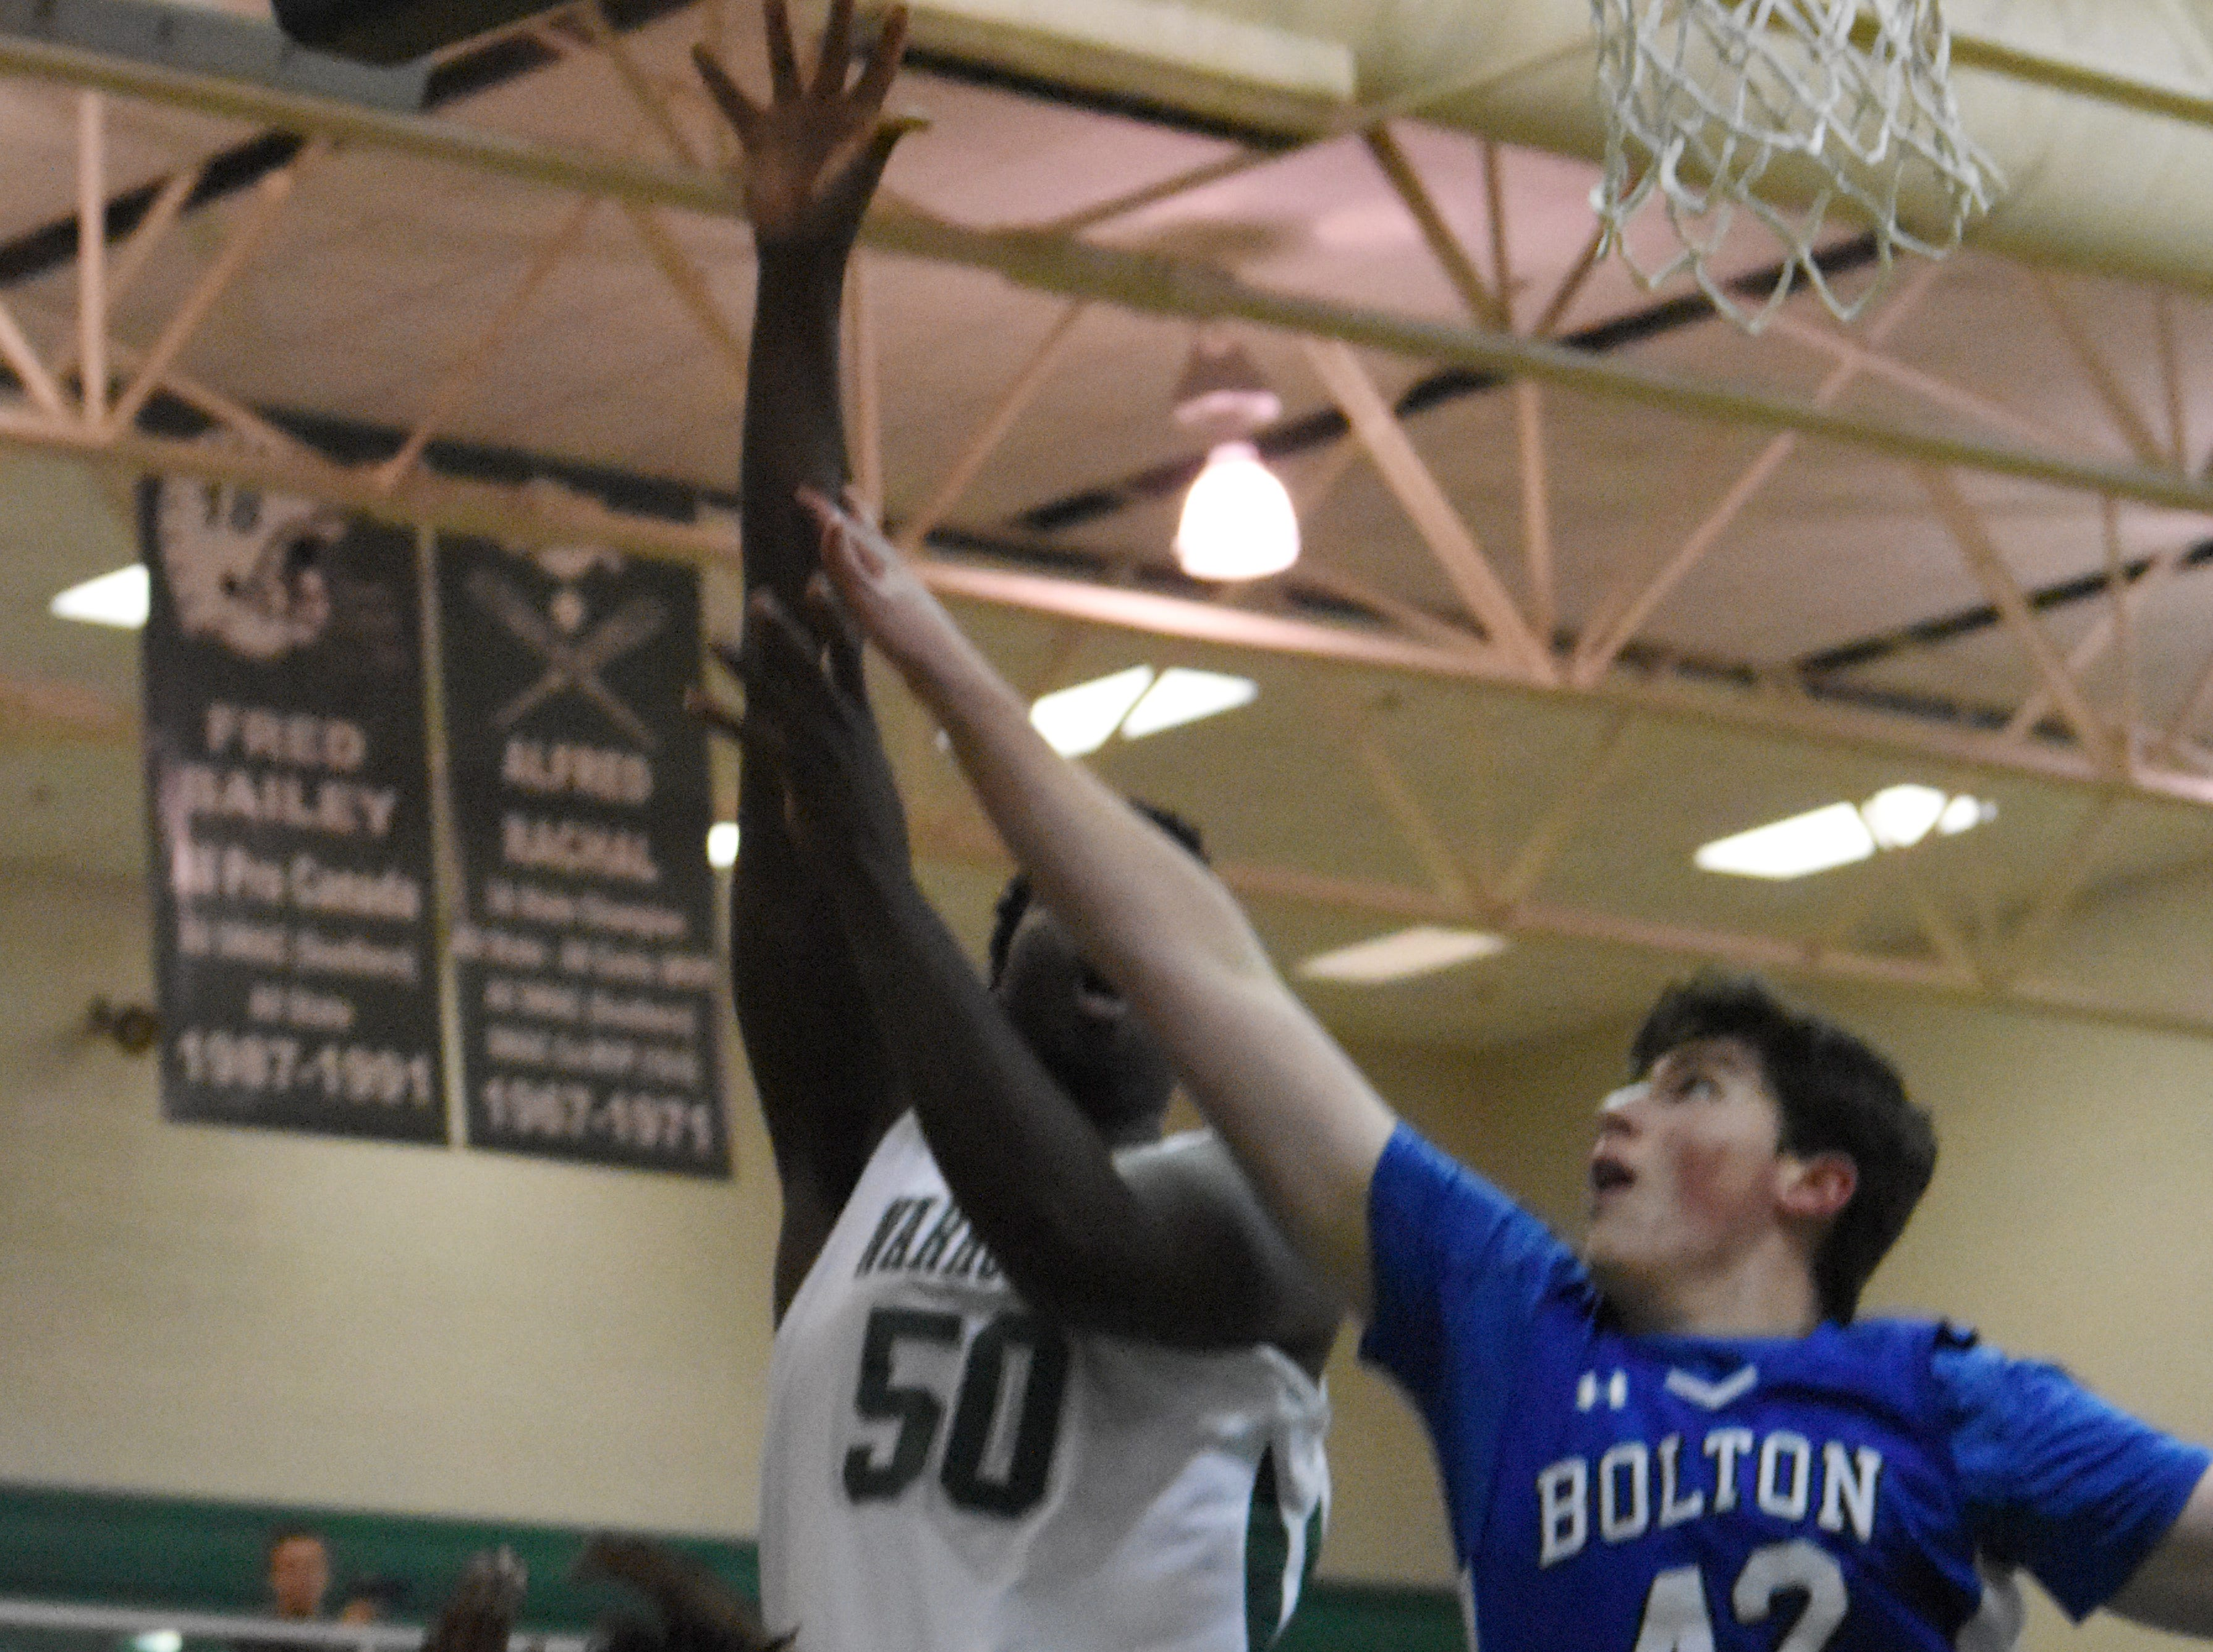 Peabody Magnet High School boys met Bolton High School at the Emerald Palace Friday, Jan. 25, 2019. Peabody won 115-28.